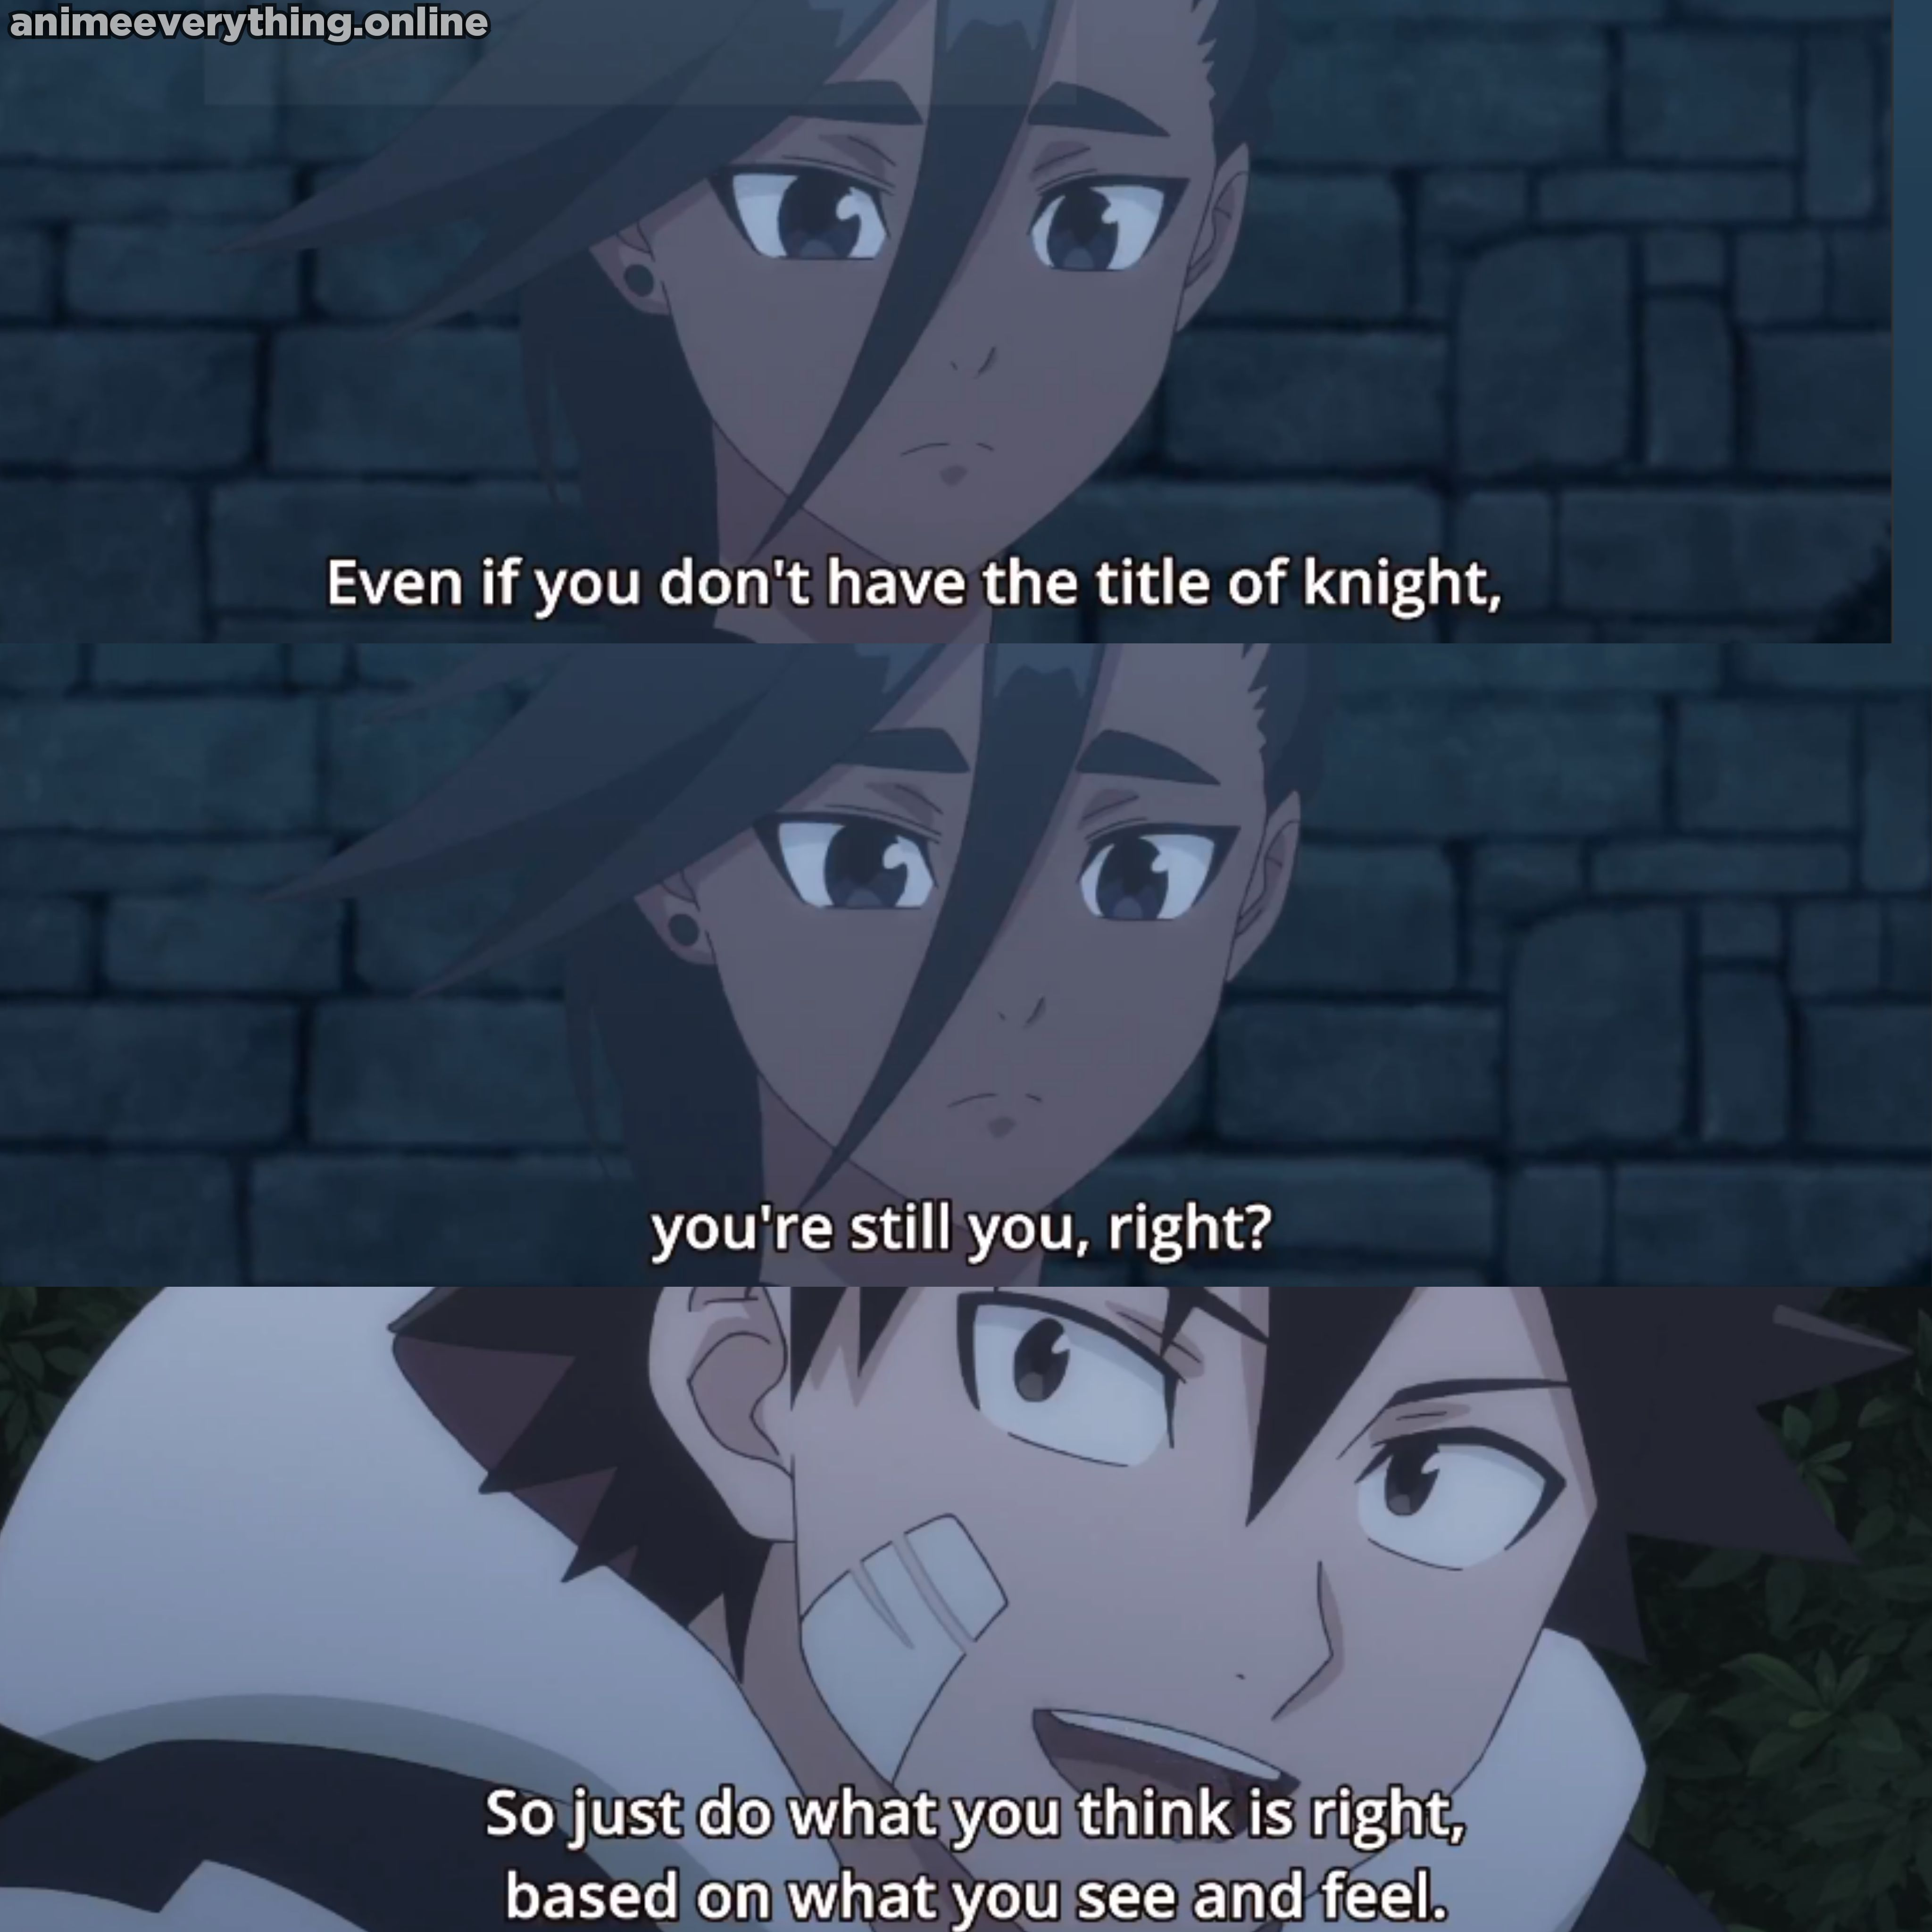 Pin by Northie on nie zgubki in 2020 Anime quotes, Anime